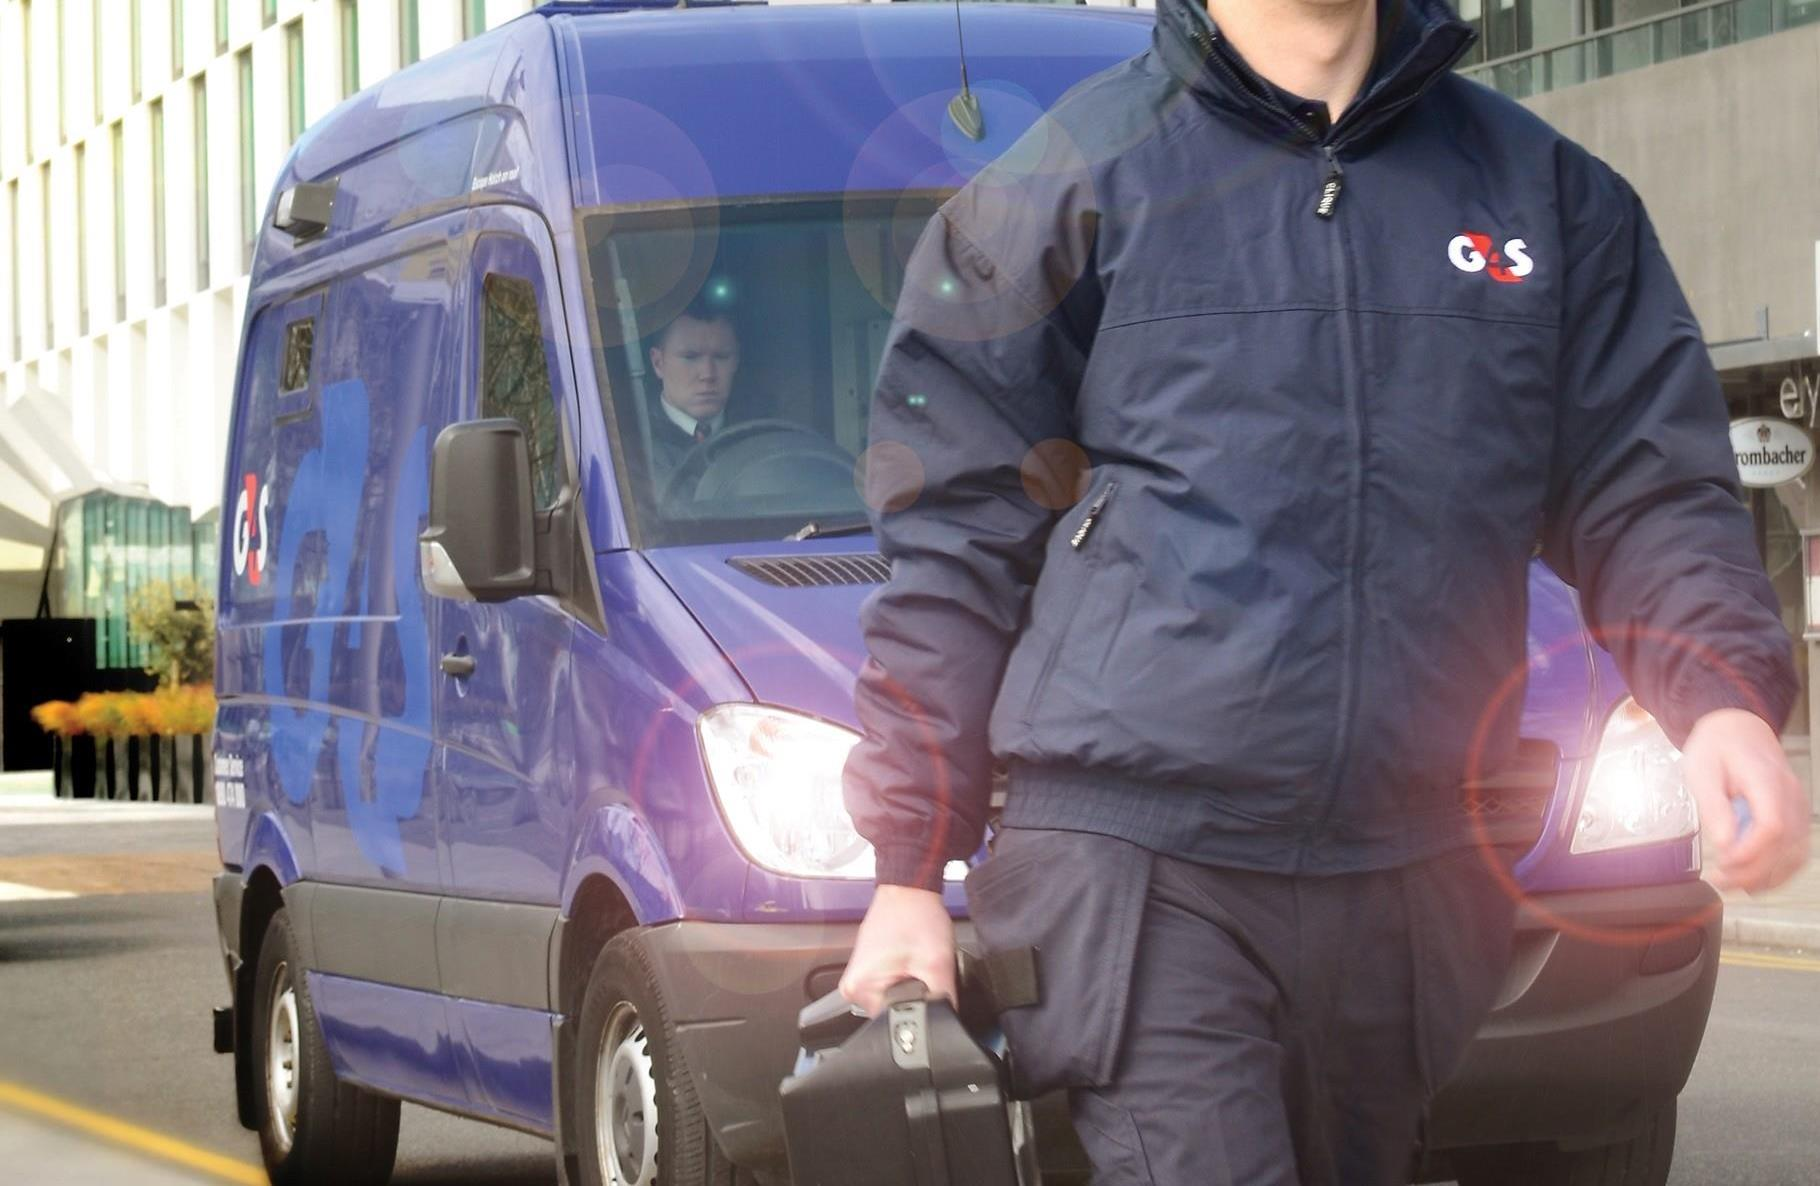 G4s Security Careers Uk